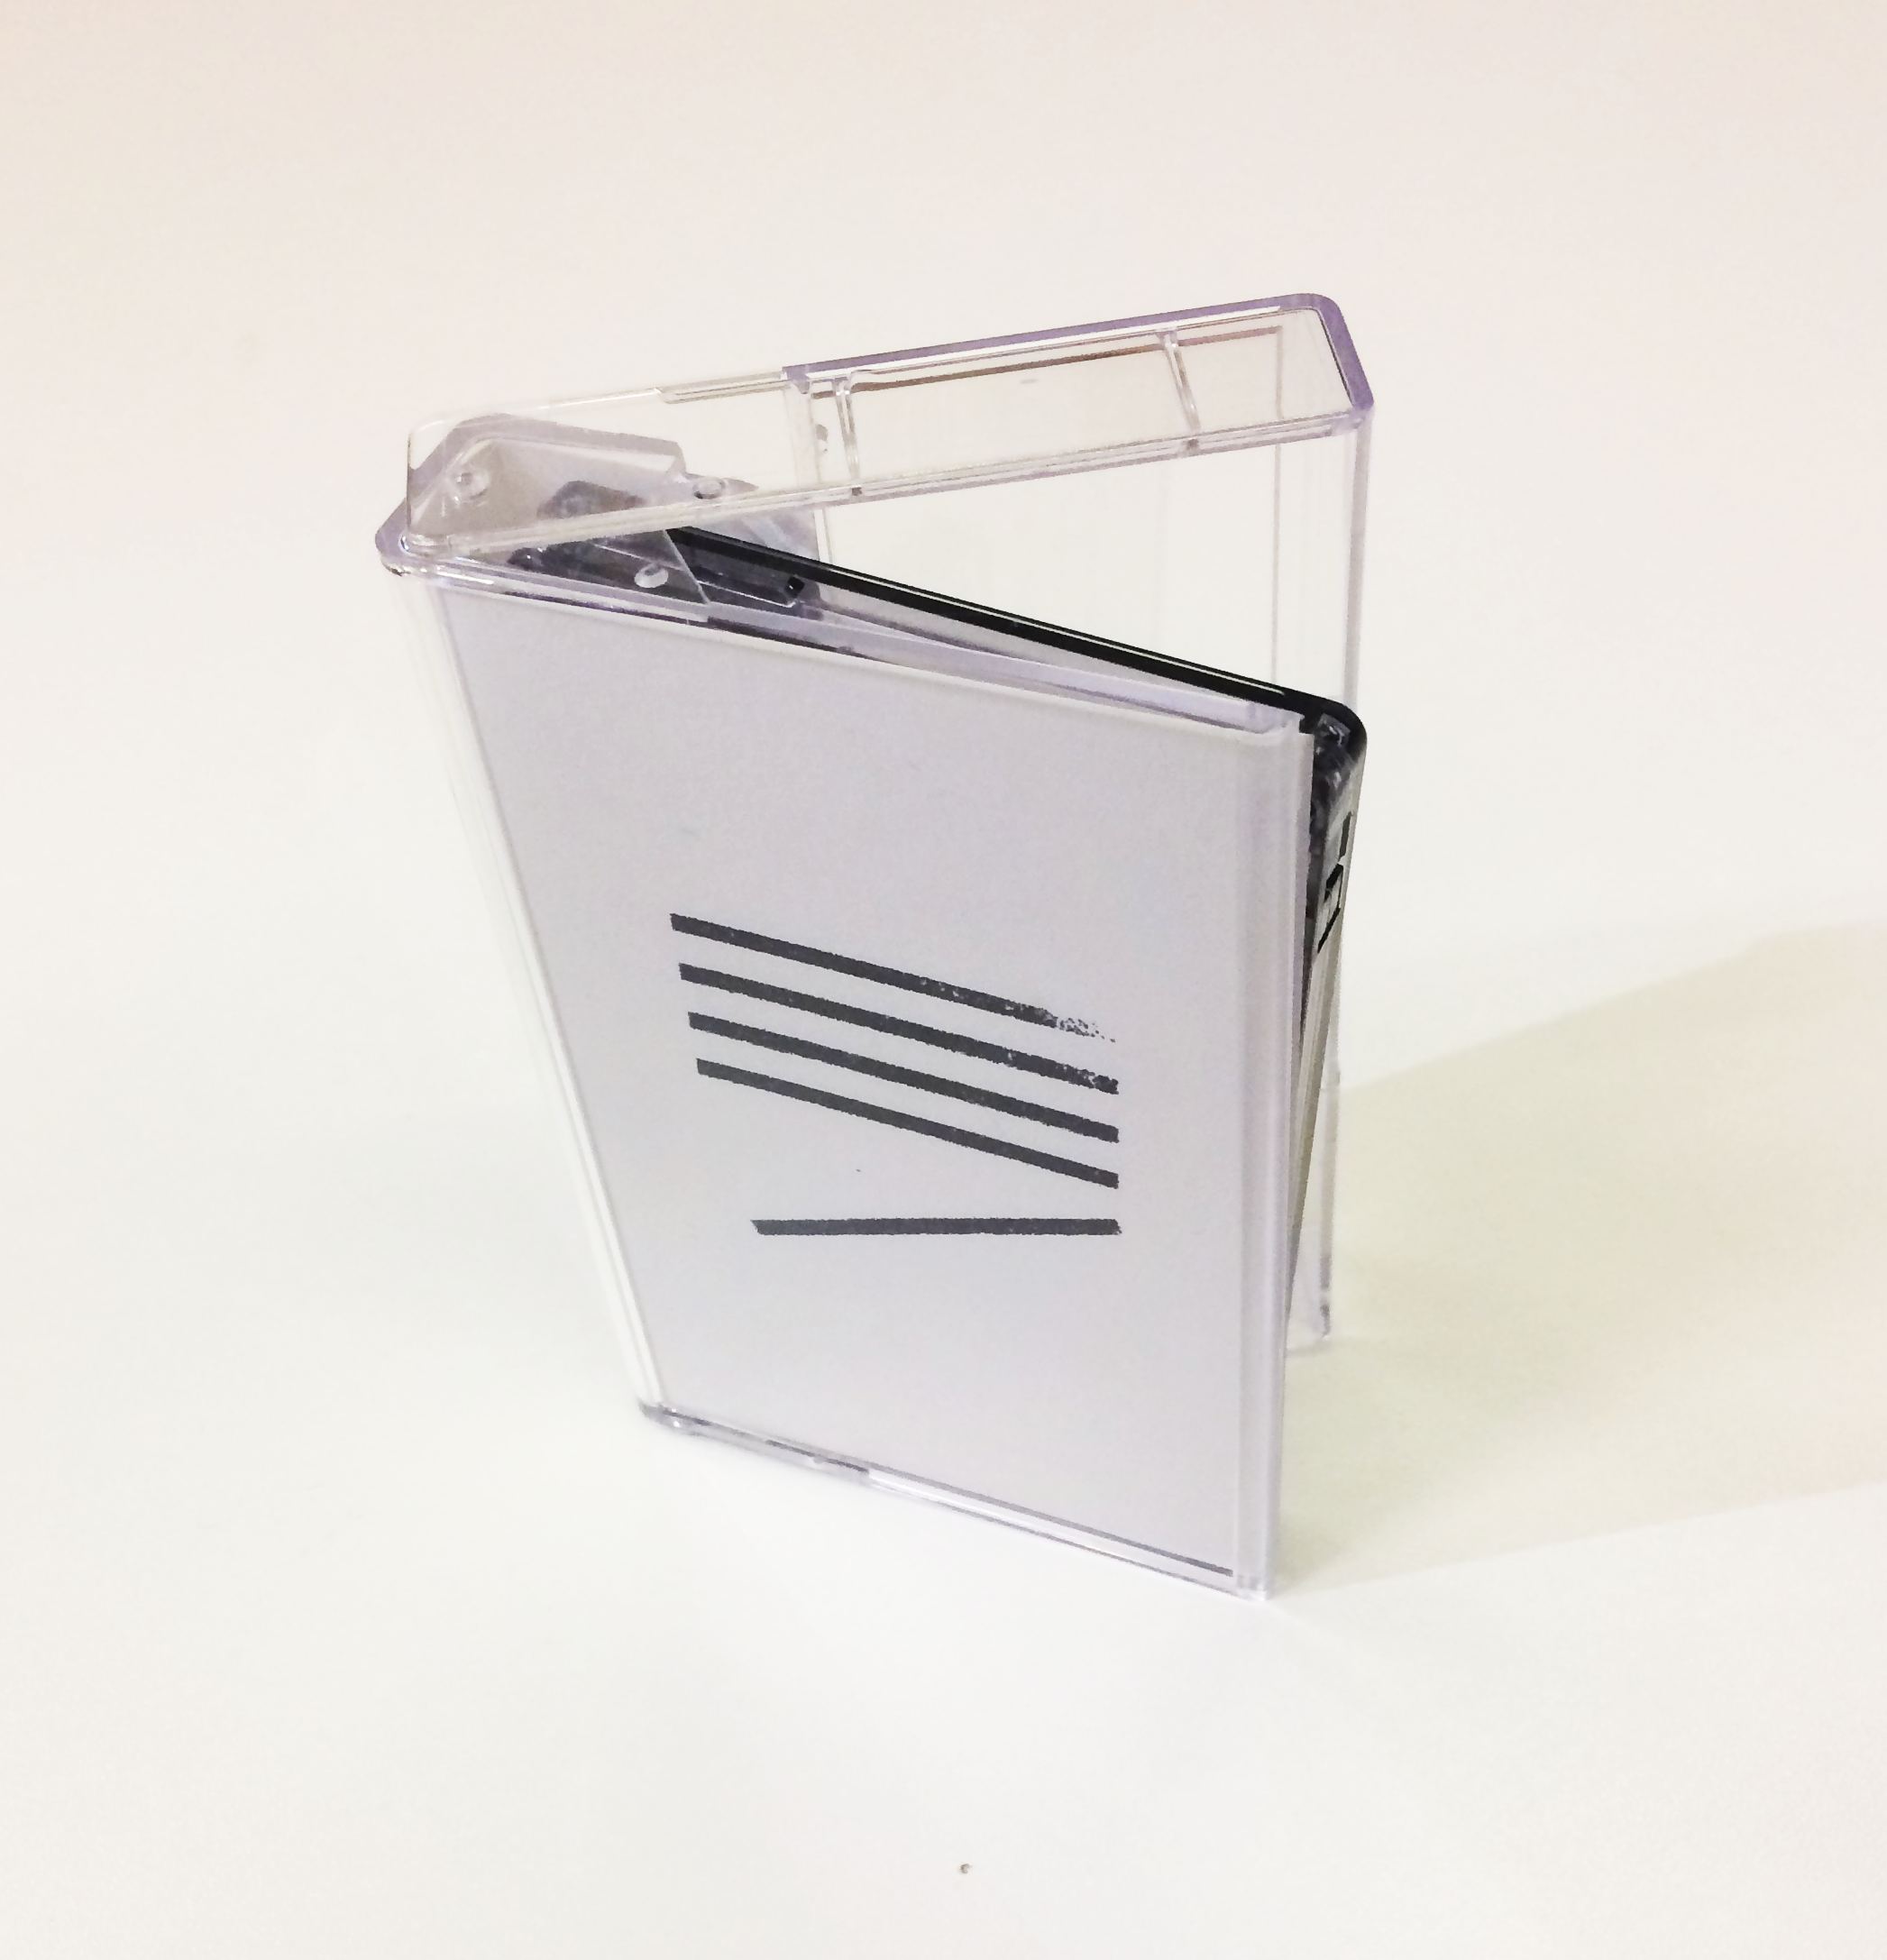 Come along to pick up a limited edition cassette of our latest EP: Outside the Lines - Vol. 1.